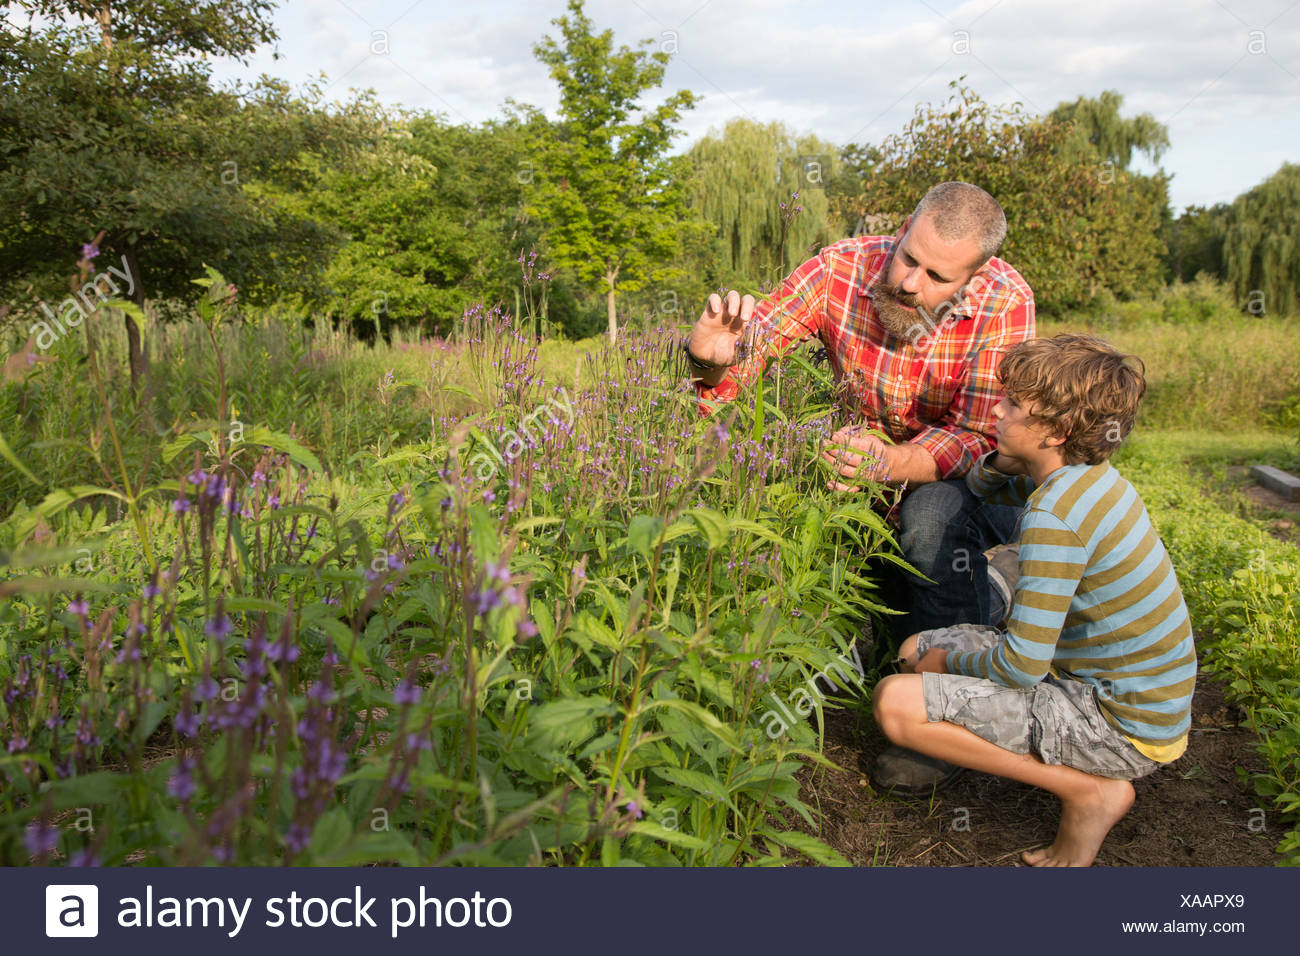 Mature man and son looking at plants on herb farm - Stock Image